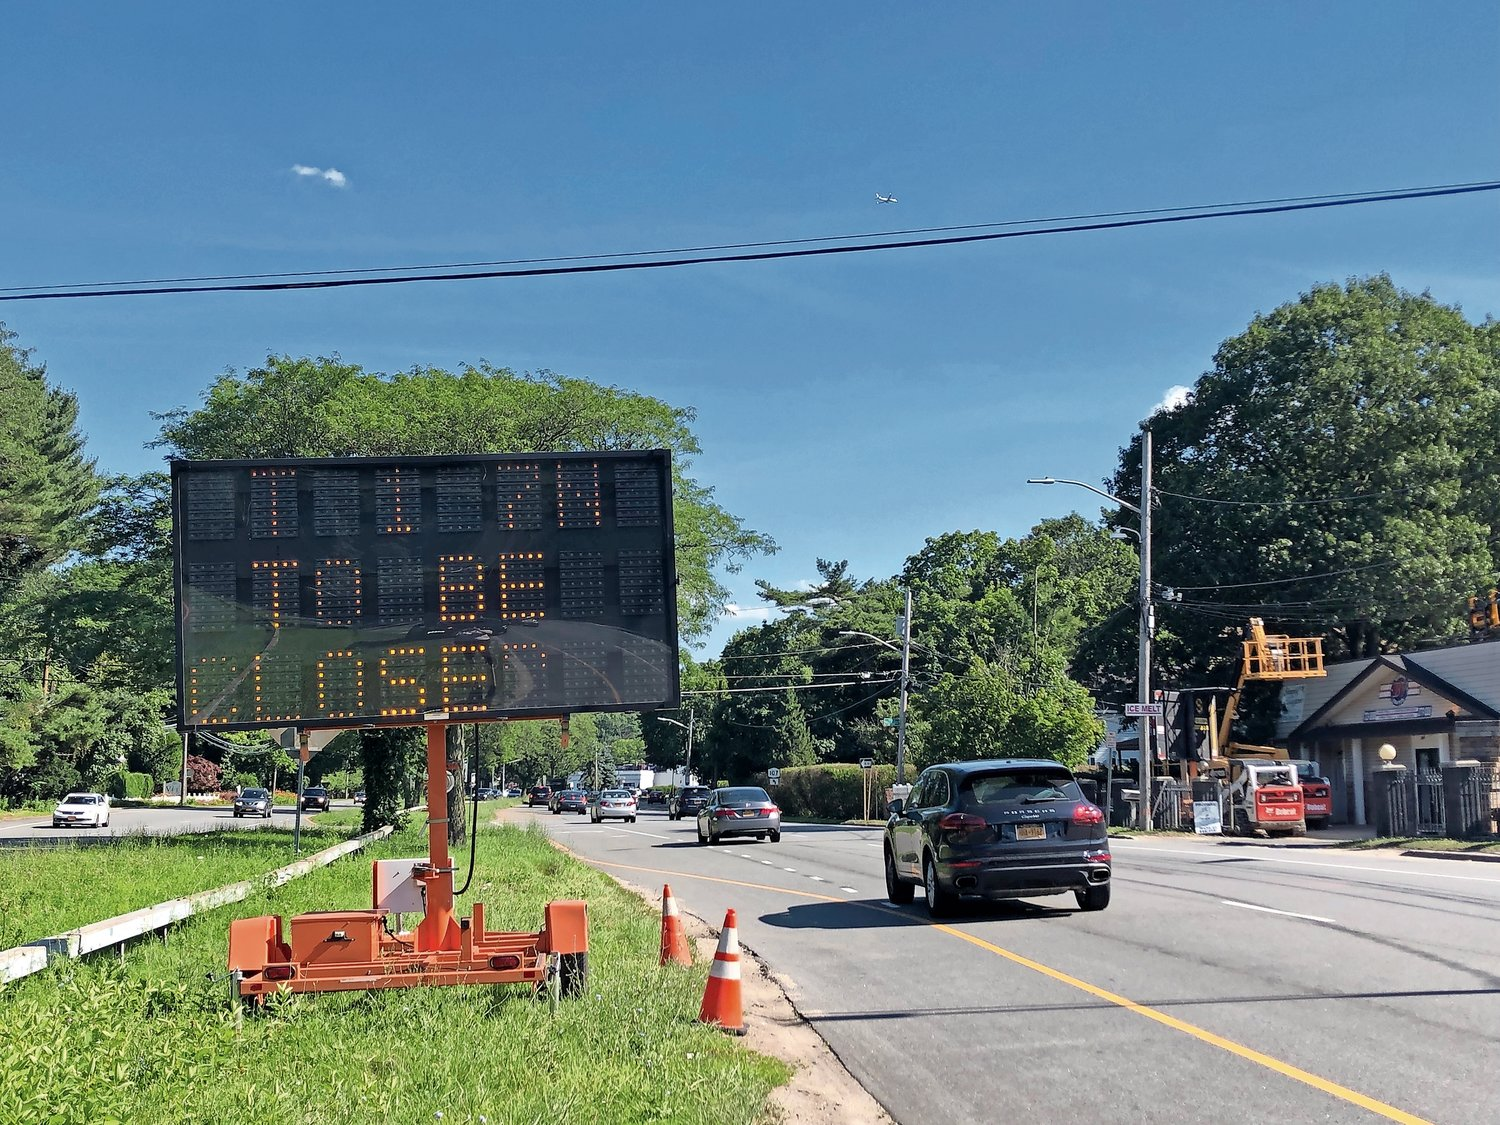 A sign along Route 107 in Glen Head indicates that the roadway will soon be closed for utility work in some places.